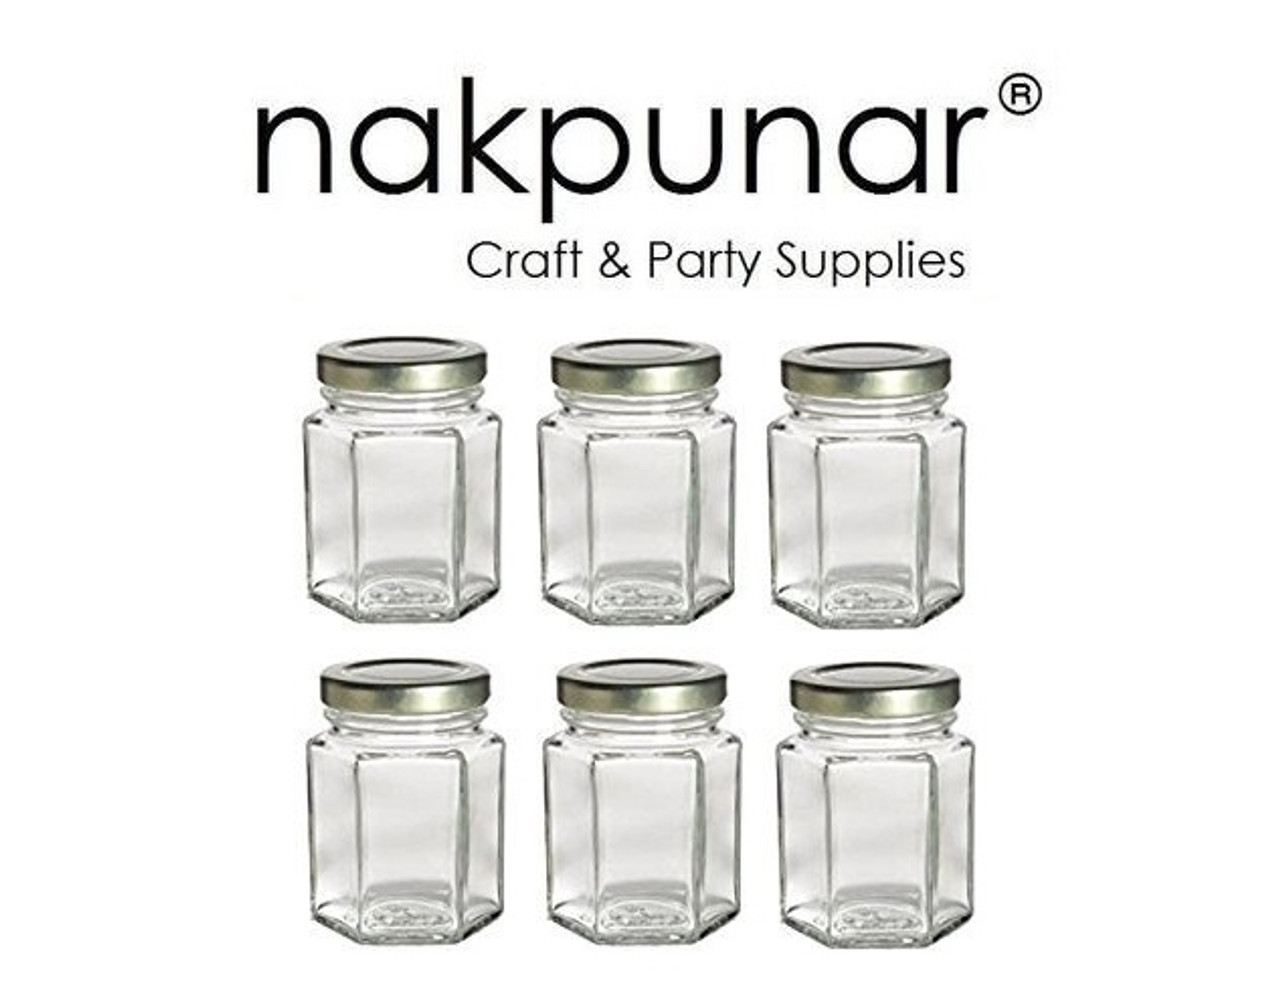 3.75 oz (110 ml) Hexagon Jars with plastisol lined Gold Lid